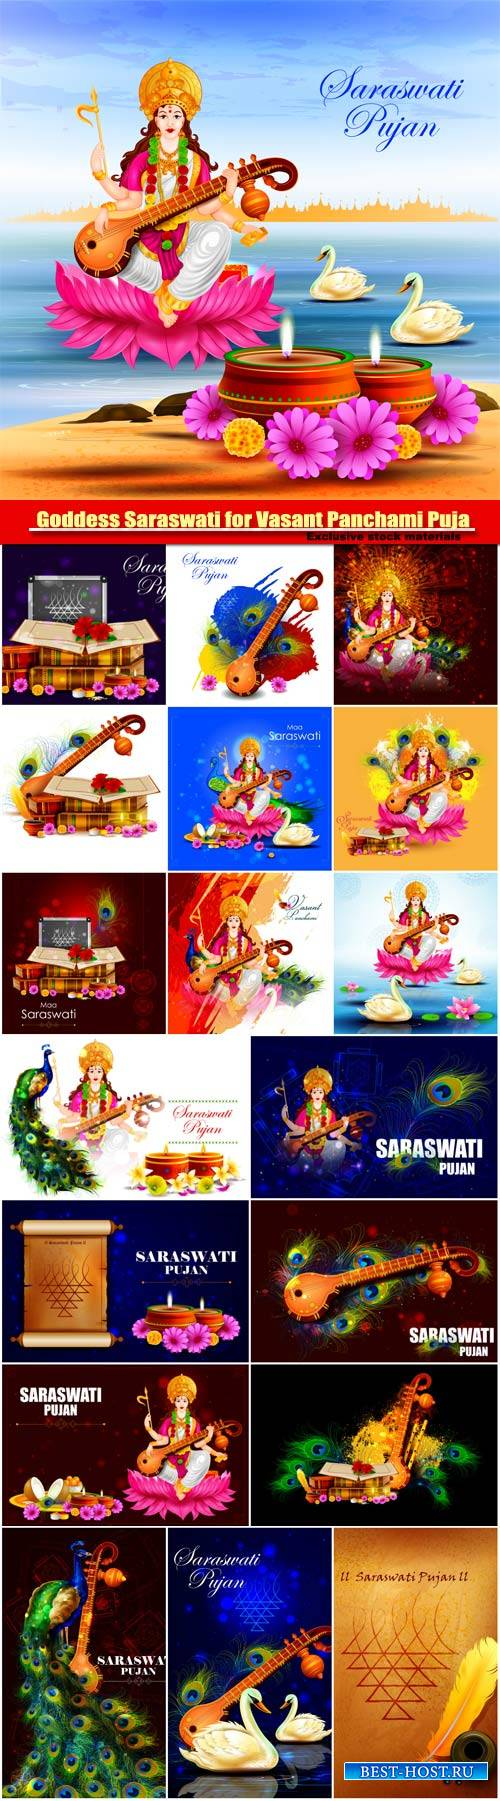 Goddess Saraswati for Vasant Panchami Puja of India, vector illustration